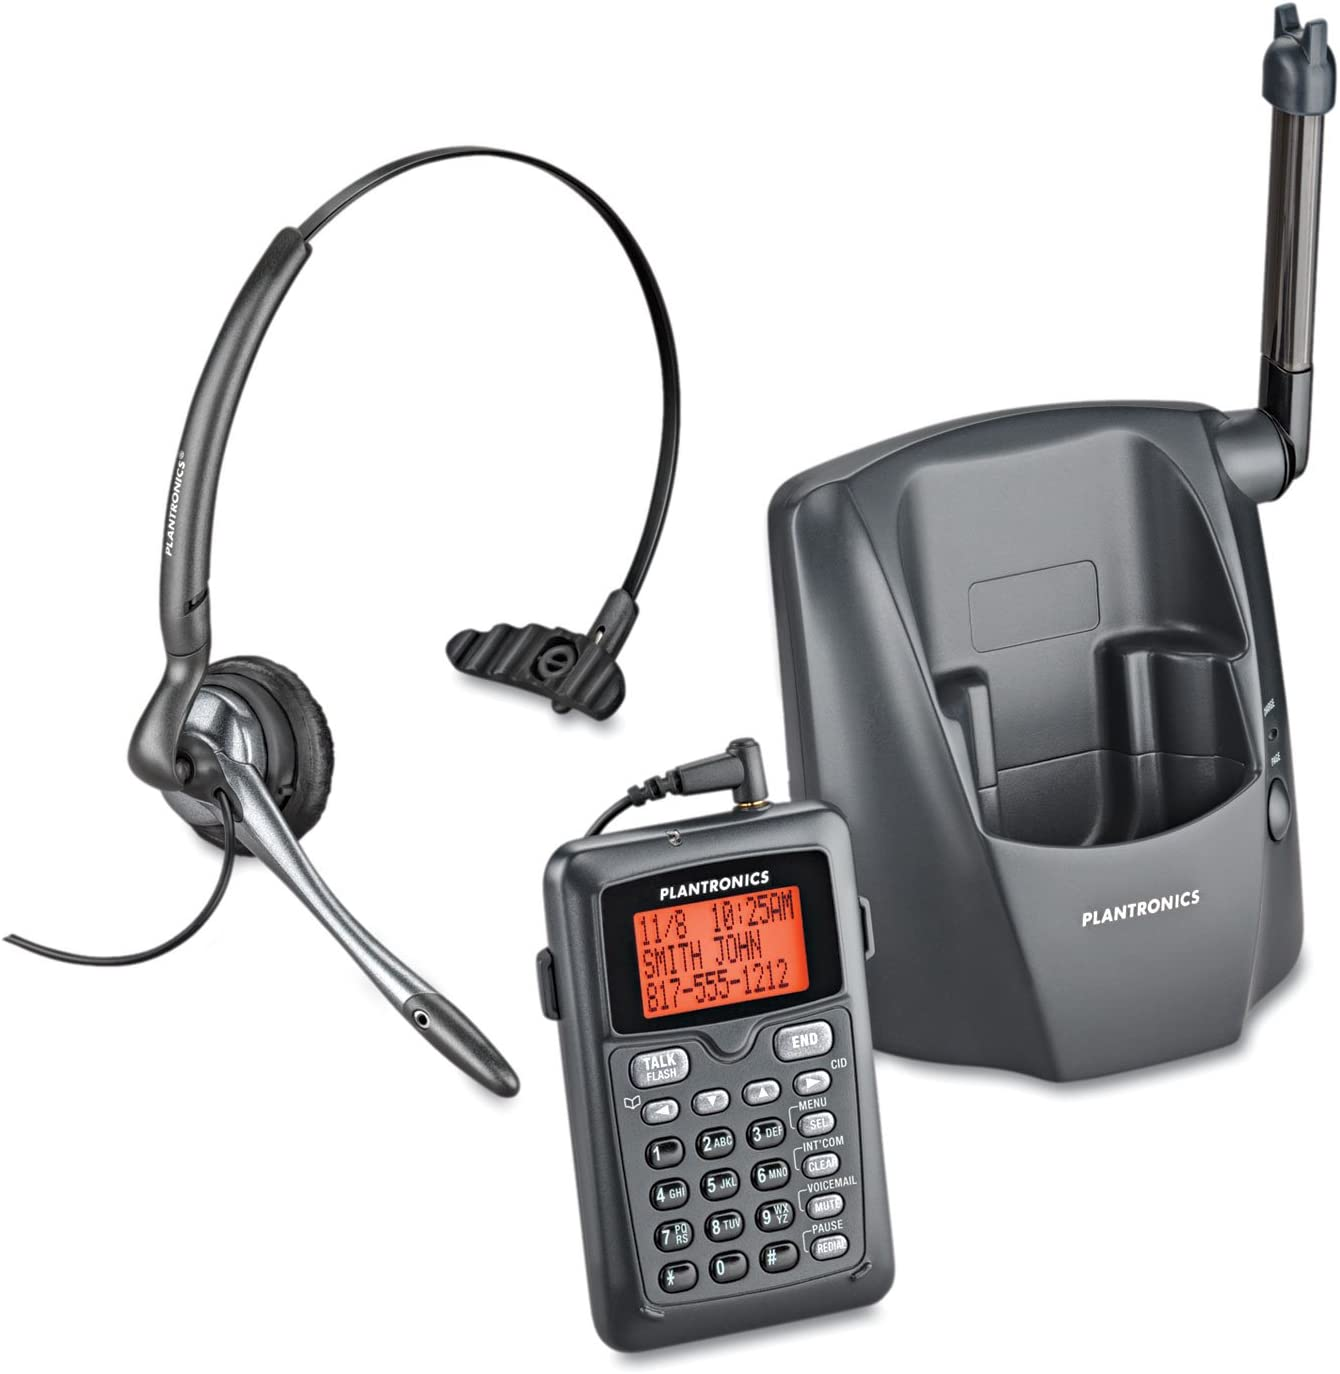 Headset Telephone 6.0 Can Ct14 Cordless